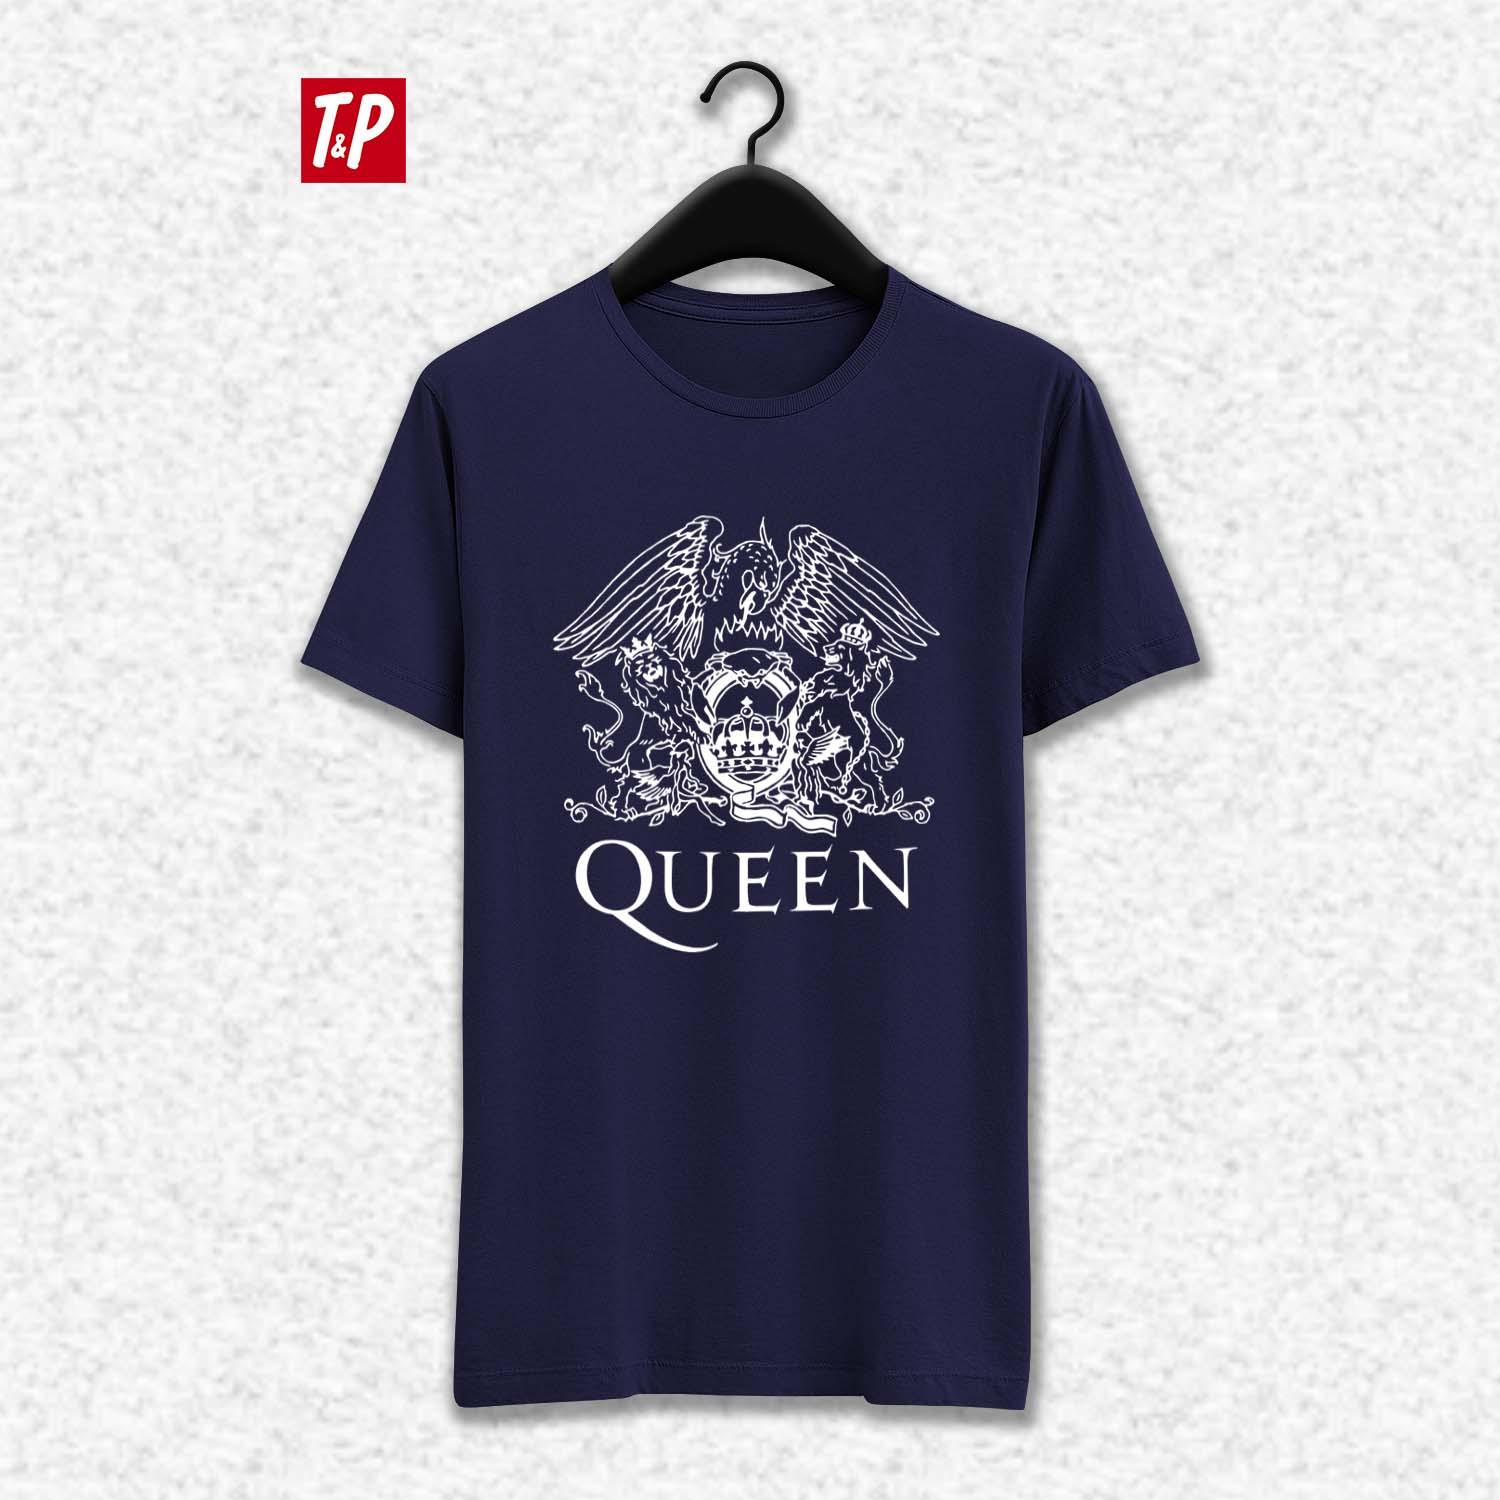 queen printed t-shirt available online